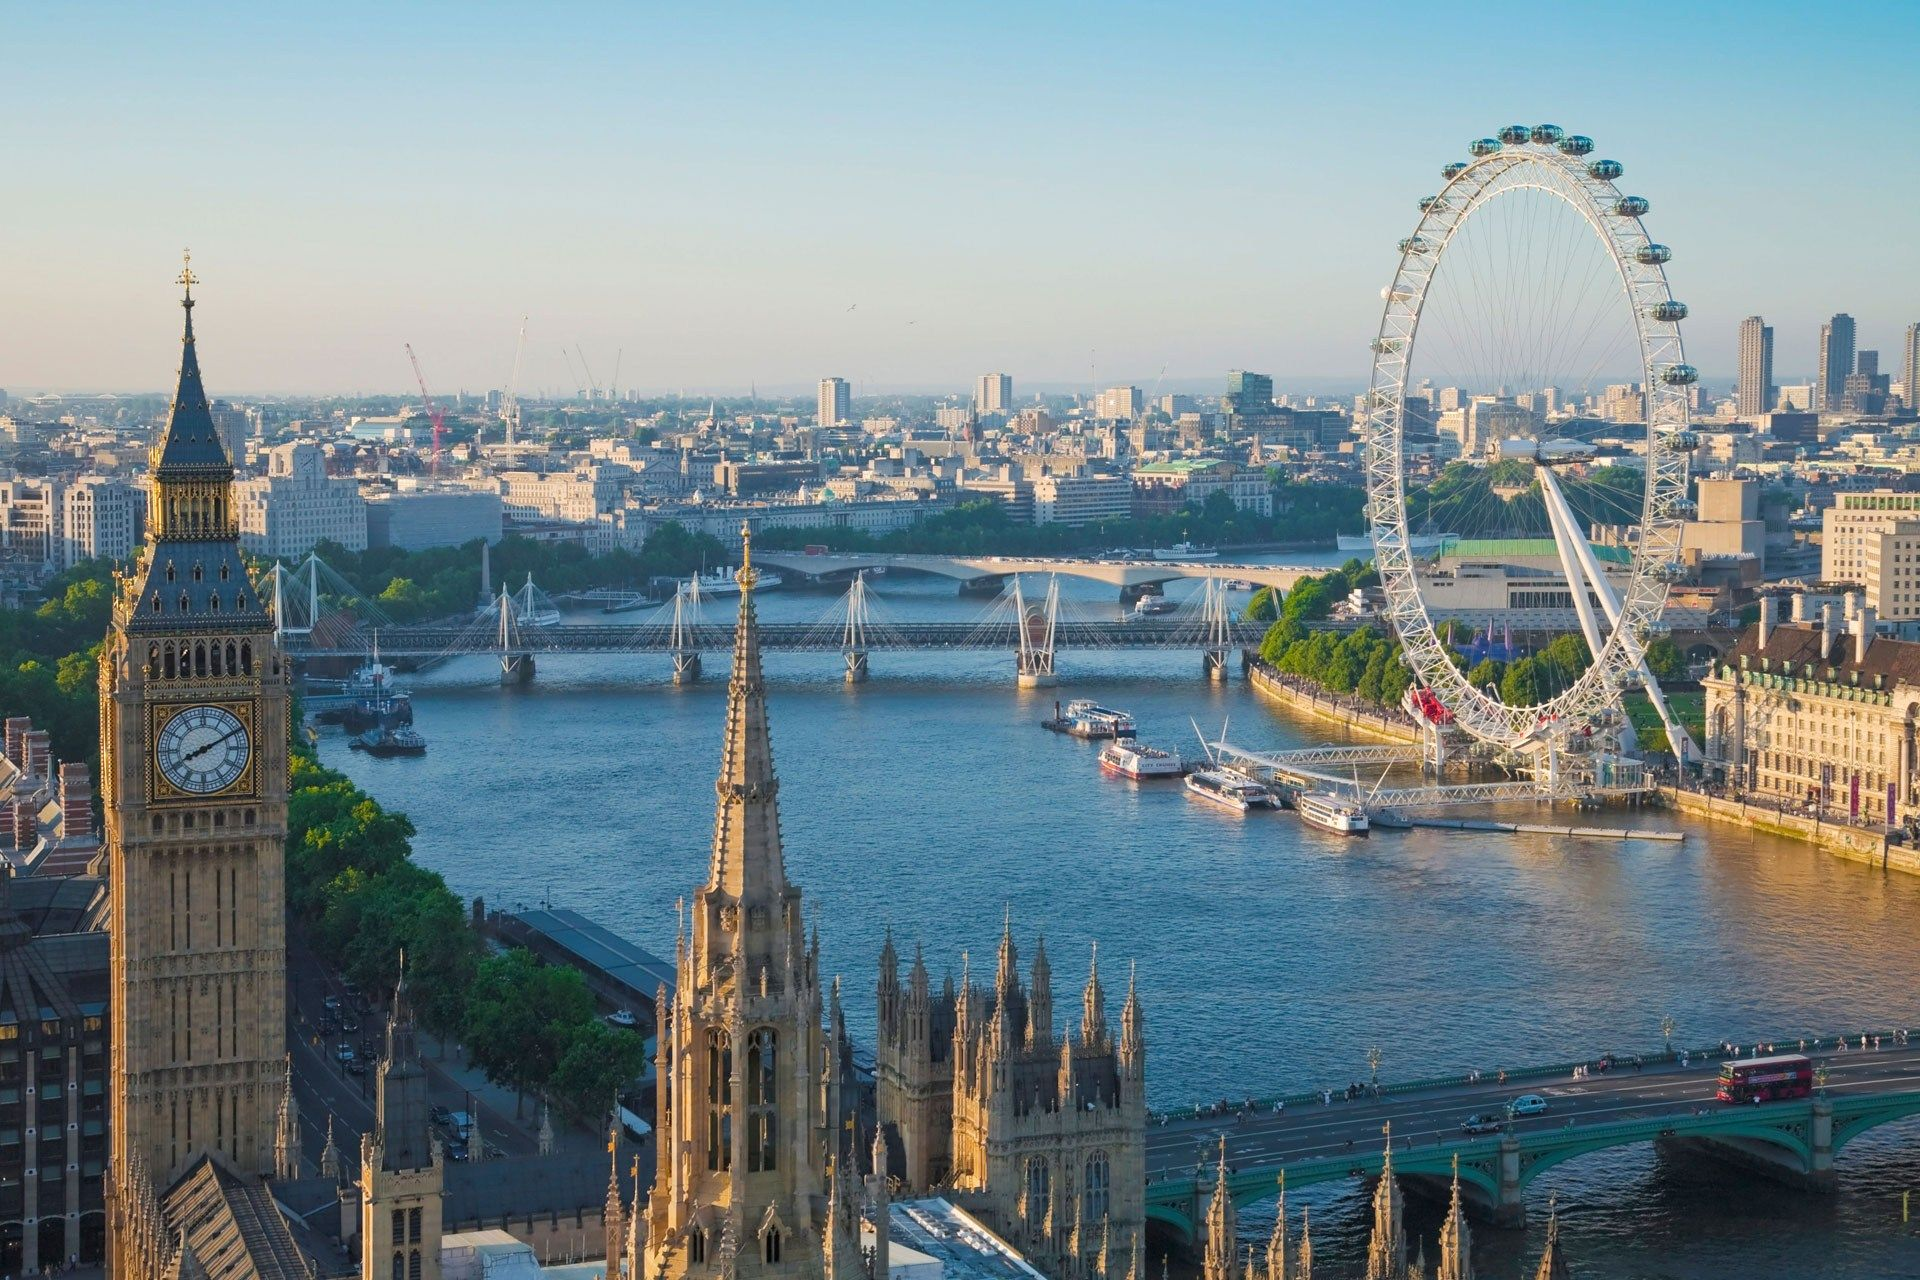 10 top places to visit along the Thames